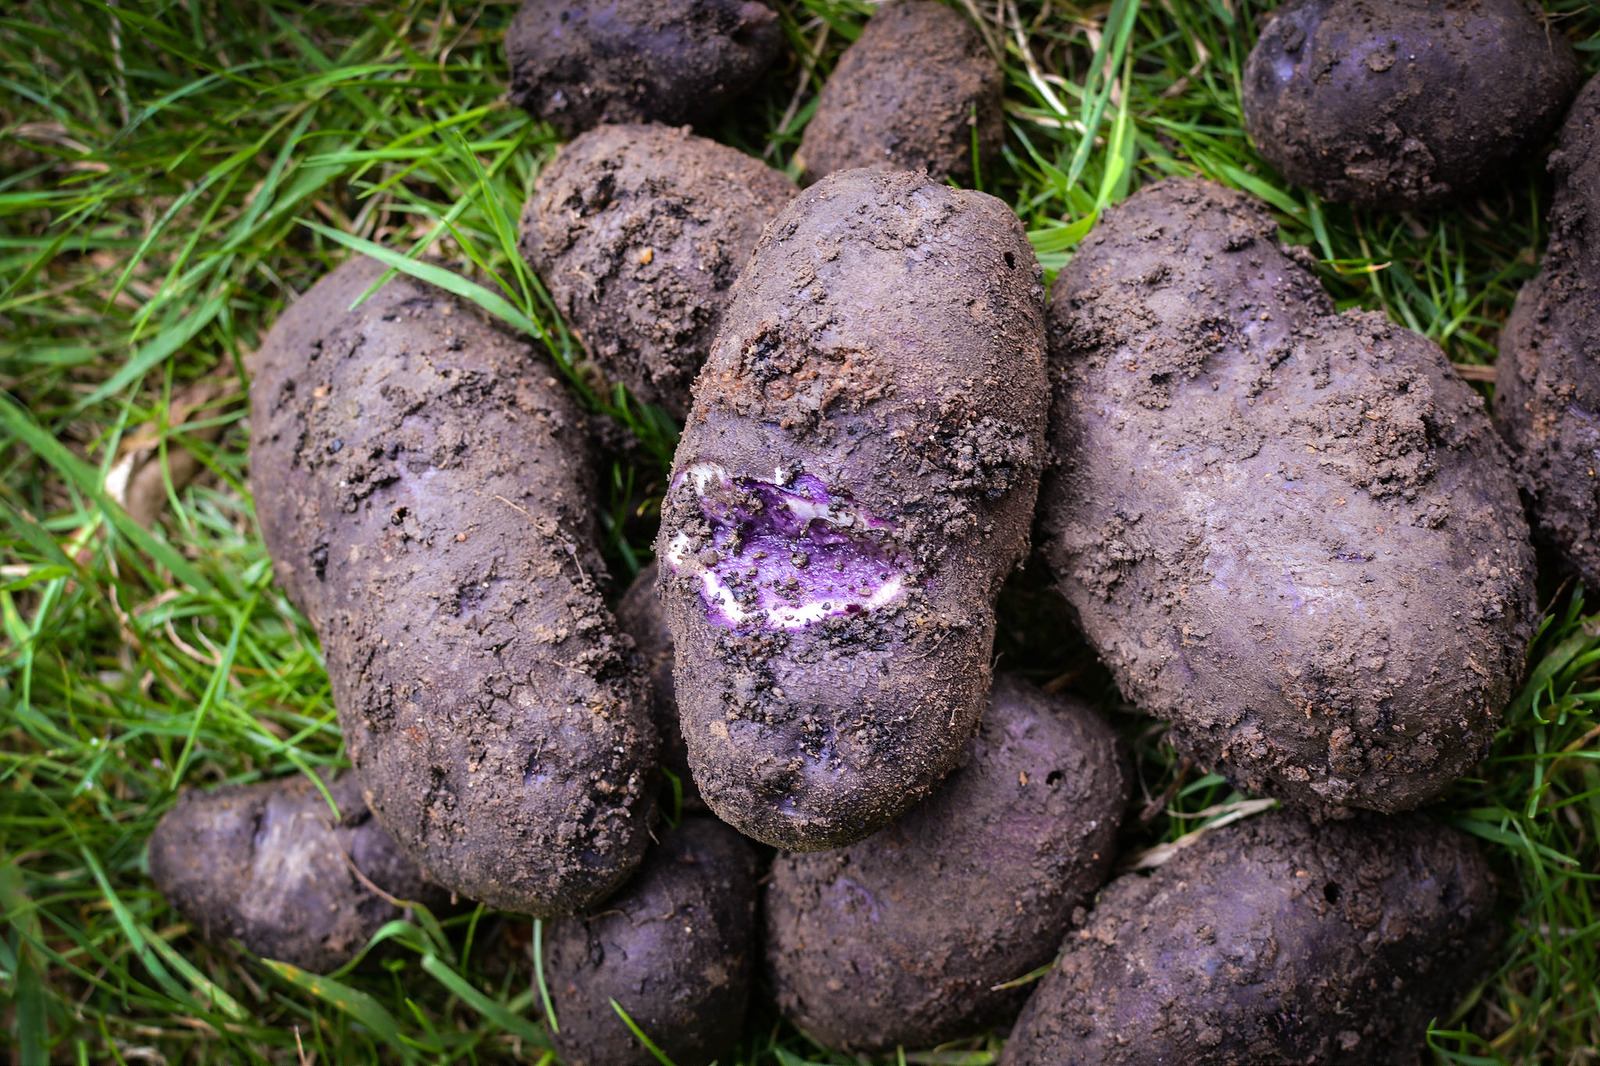 Purple majesty potatoes at the allotment